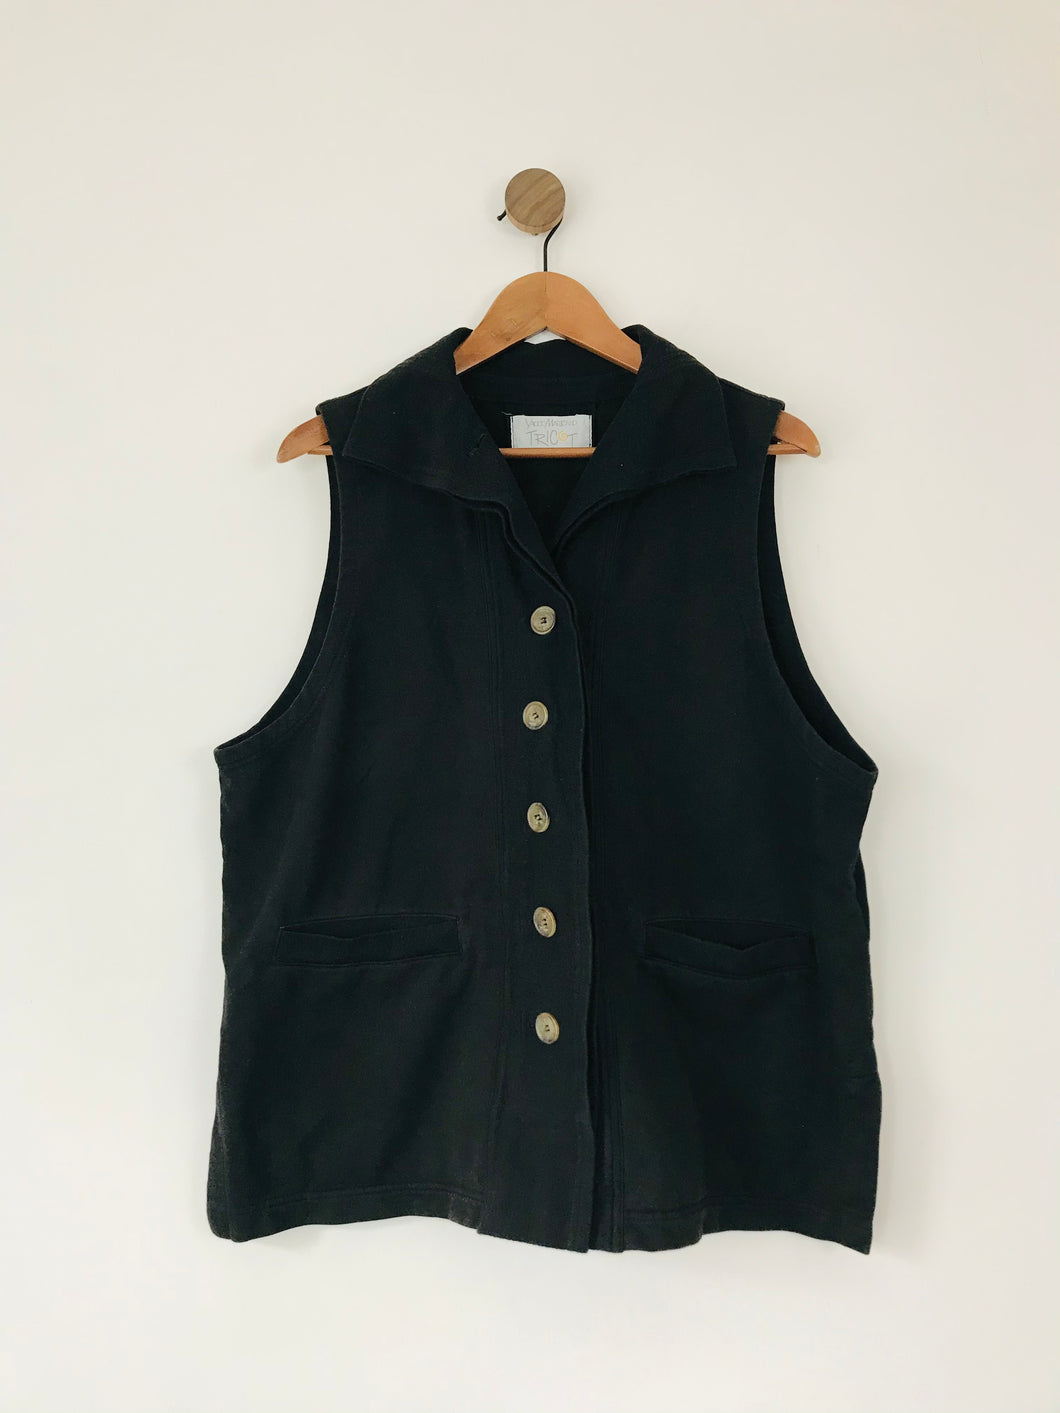 Yacco Maricard Women's Collared Button Waistcoat Vest | L UK16 | Black